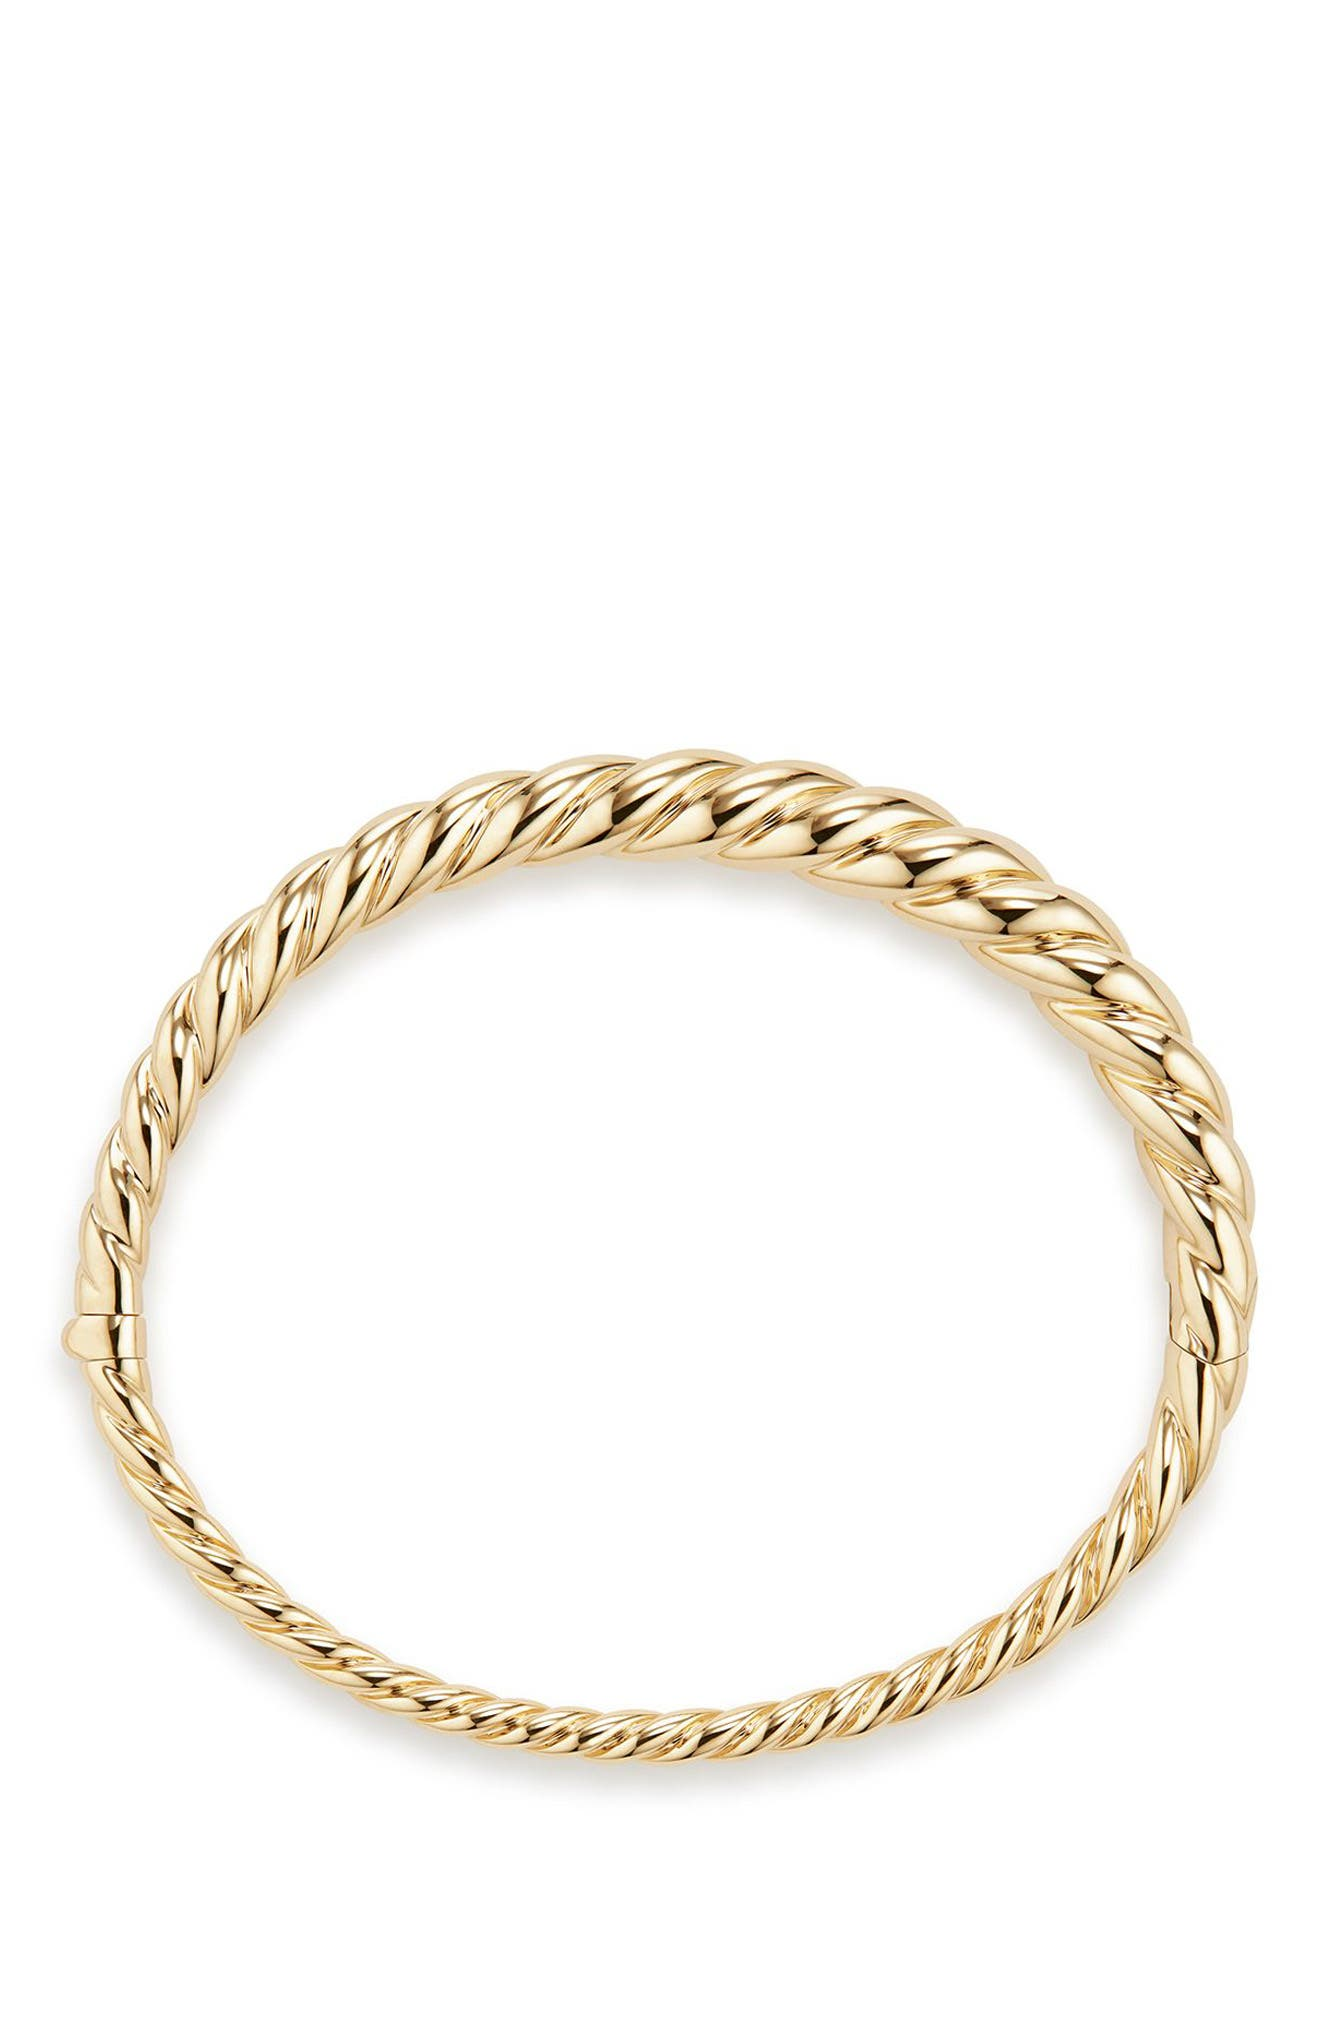 Pure Form Cable Bracelet in 18K Gold, 6mm,                             Alternate thumbnail 2, color,                             Yellow Gold